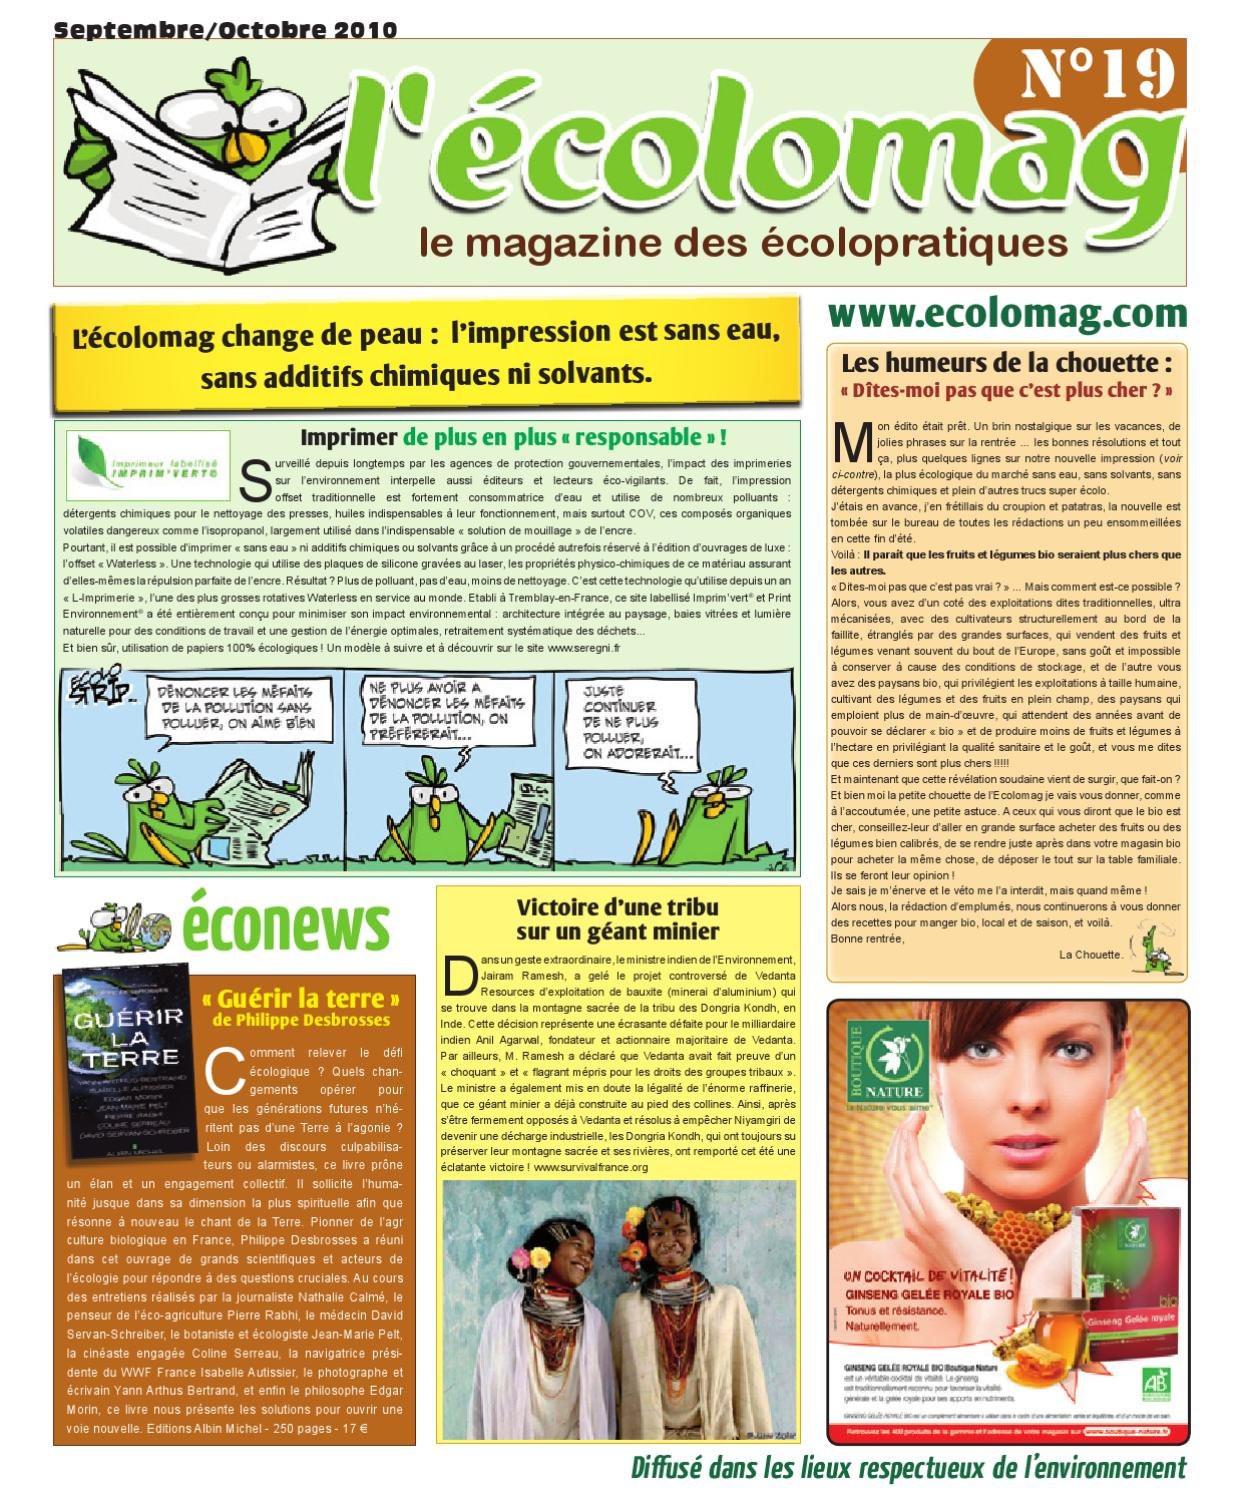 Ecolomag N°19 by L Ecolomag - issuu d62285743219